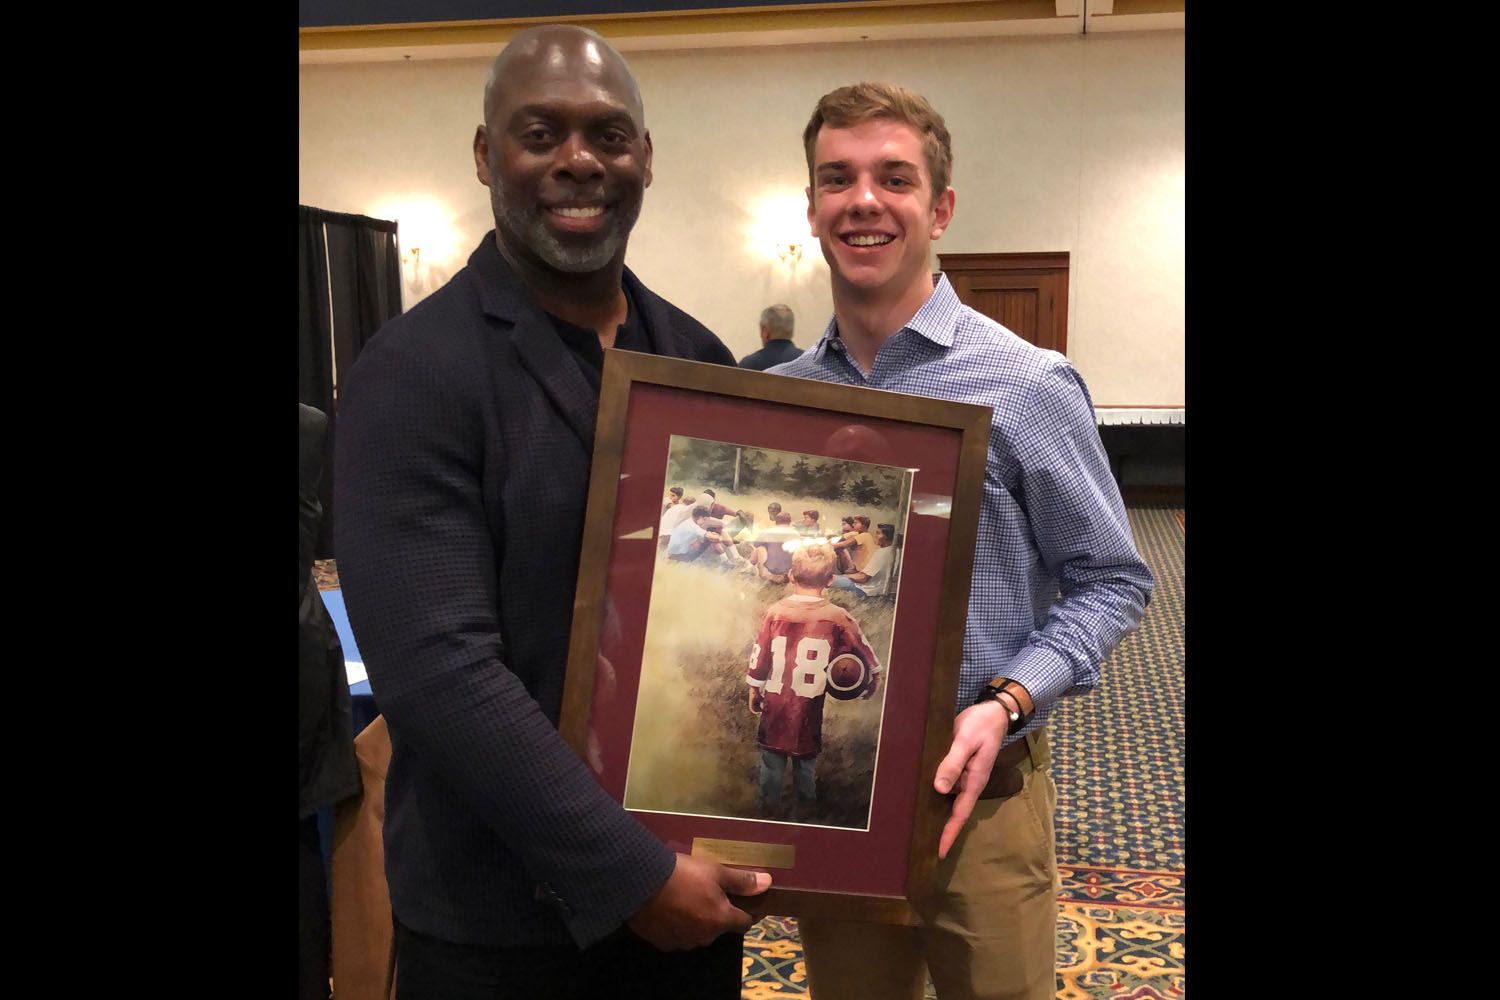 Los Angeles Chargers head coach Anthony Lynn congratulates senior Lawton Rikel at the FCA banquet on Rikel's FCA Male Athlete of the Year award.